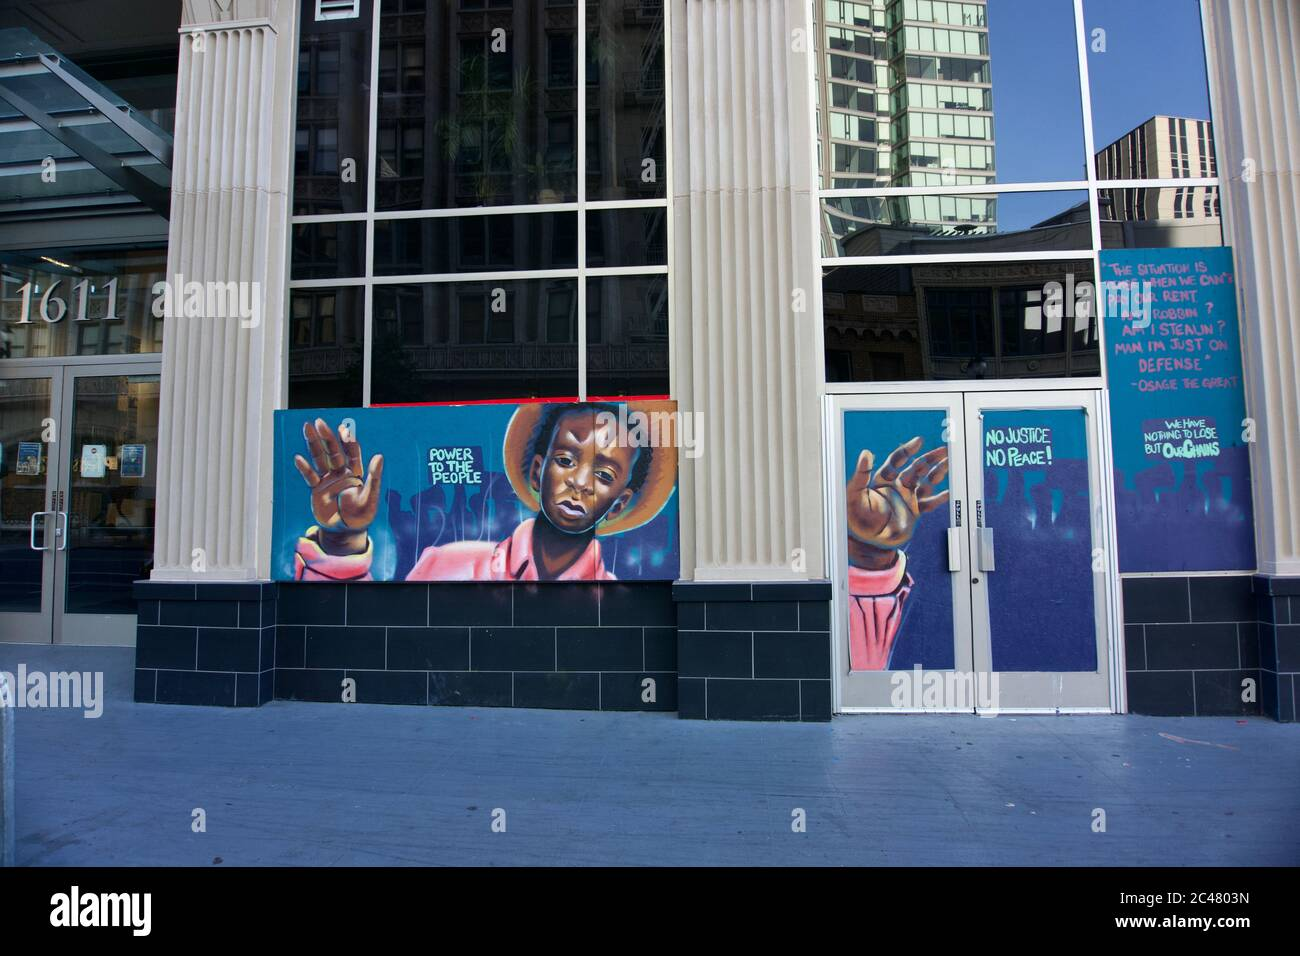 Black Lives Matter protest street art mural of a black boy with hands up on boarded building after George Floyd protests, Downtown Oakland. Stock Photo